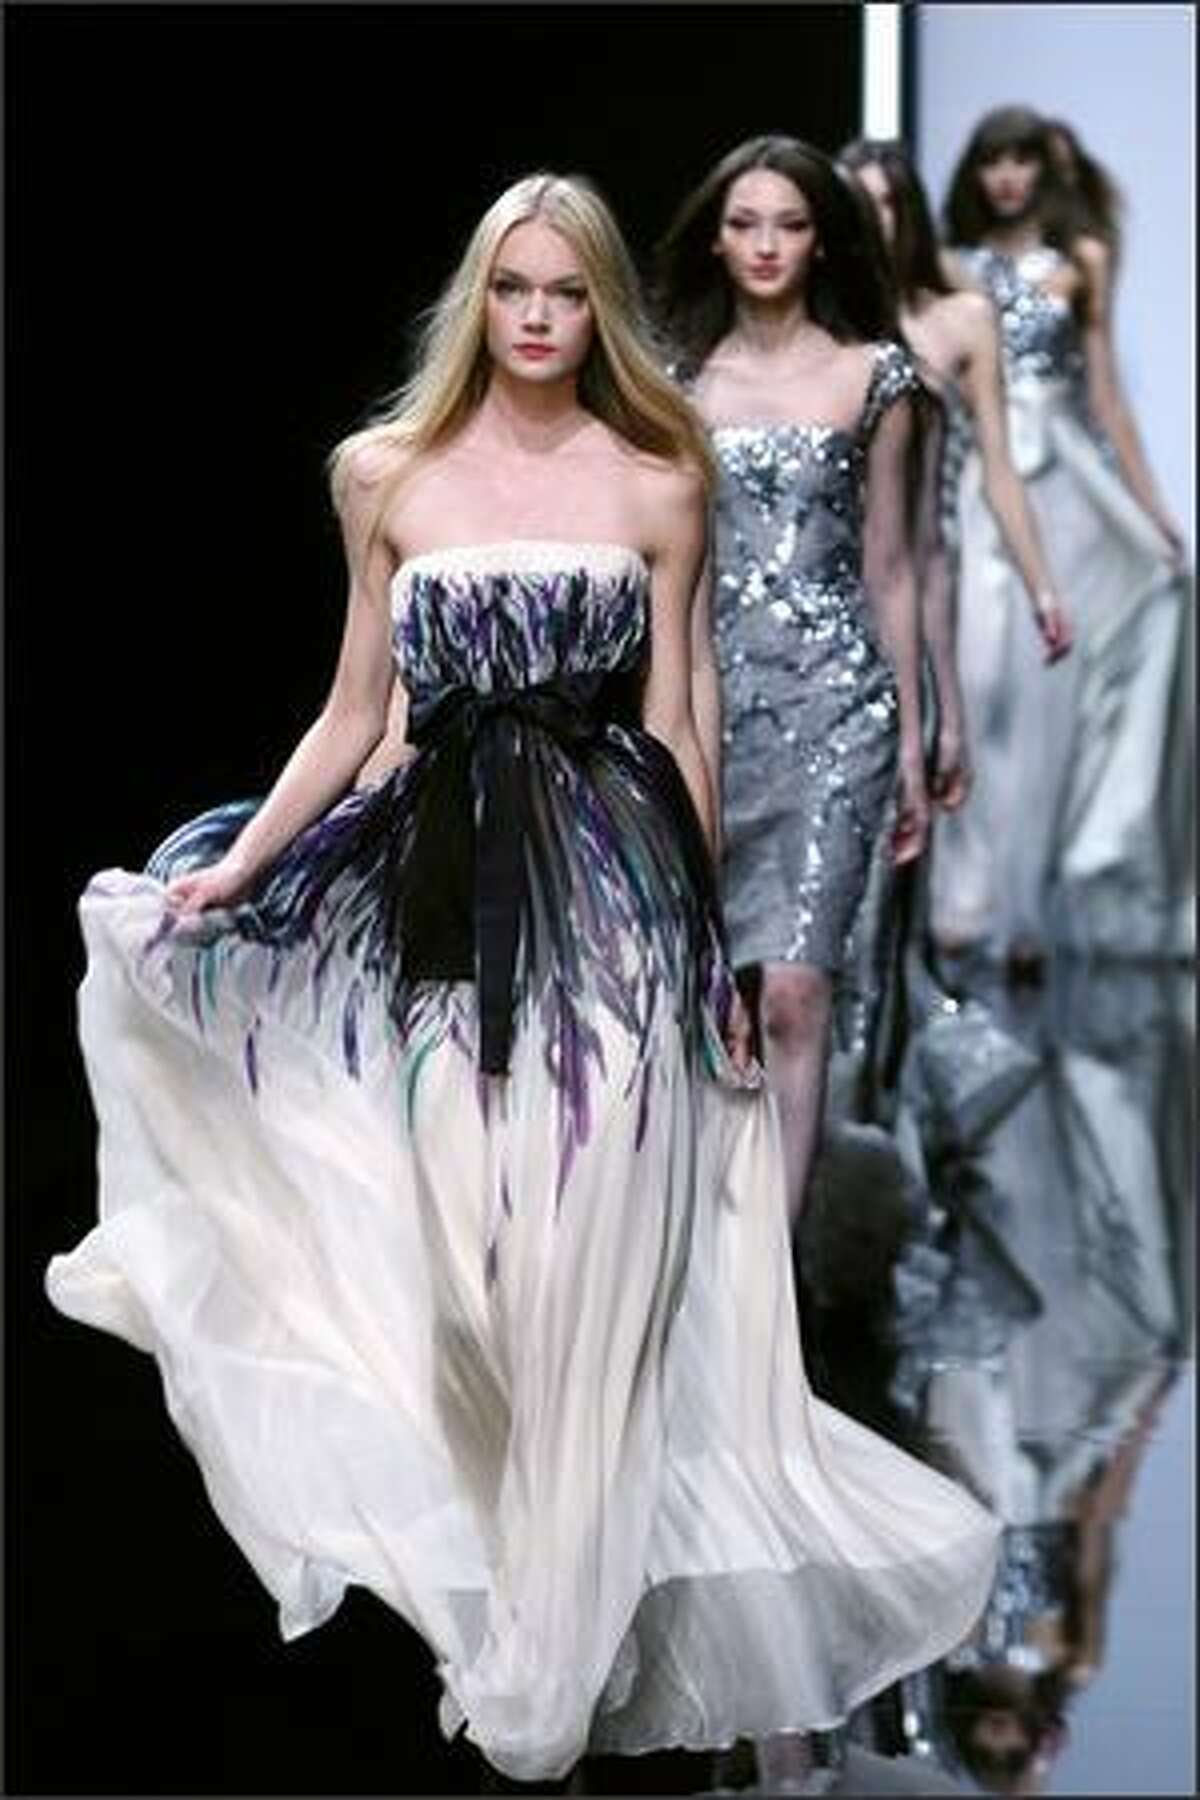 A model presents a creation by Lebanese designer Elie Saab during Spring/Summer 2008 ready-to-wear collection show in Paris, 06 October 2007.